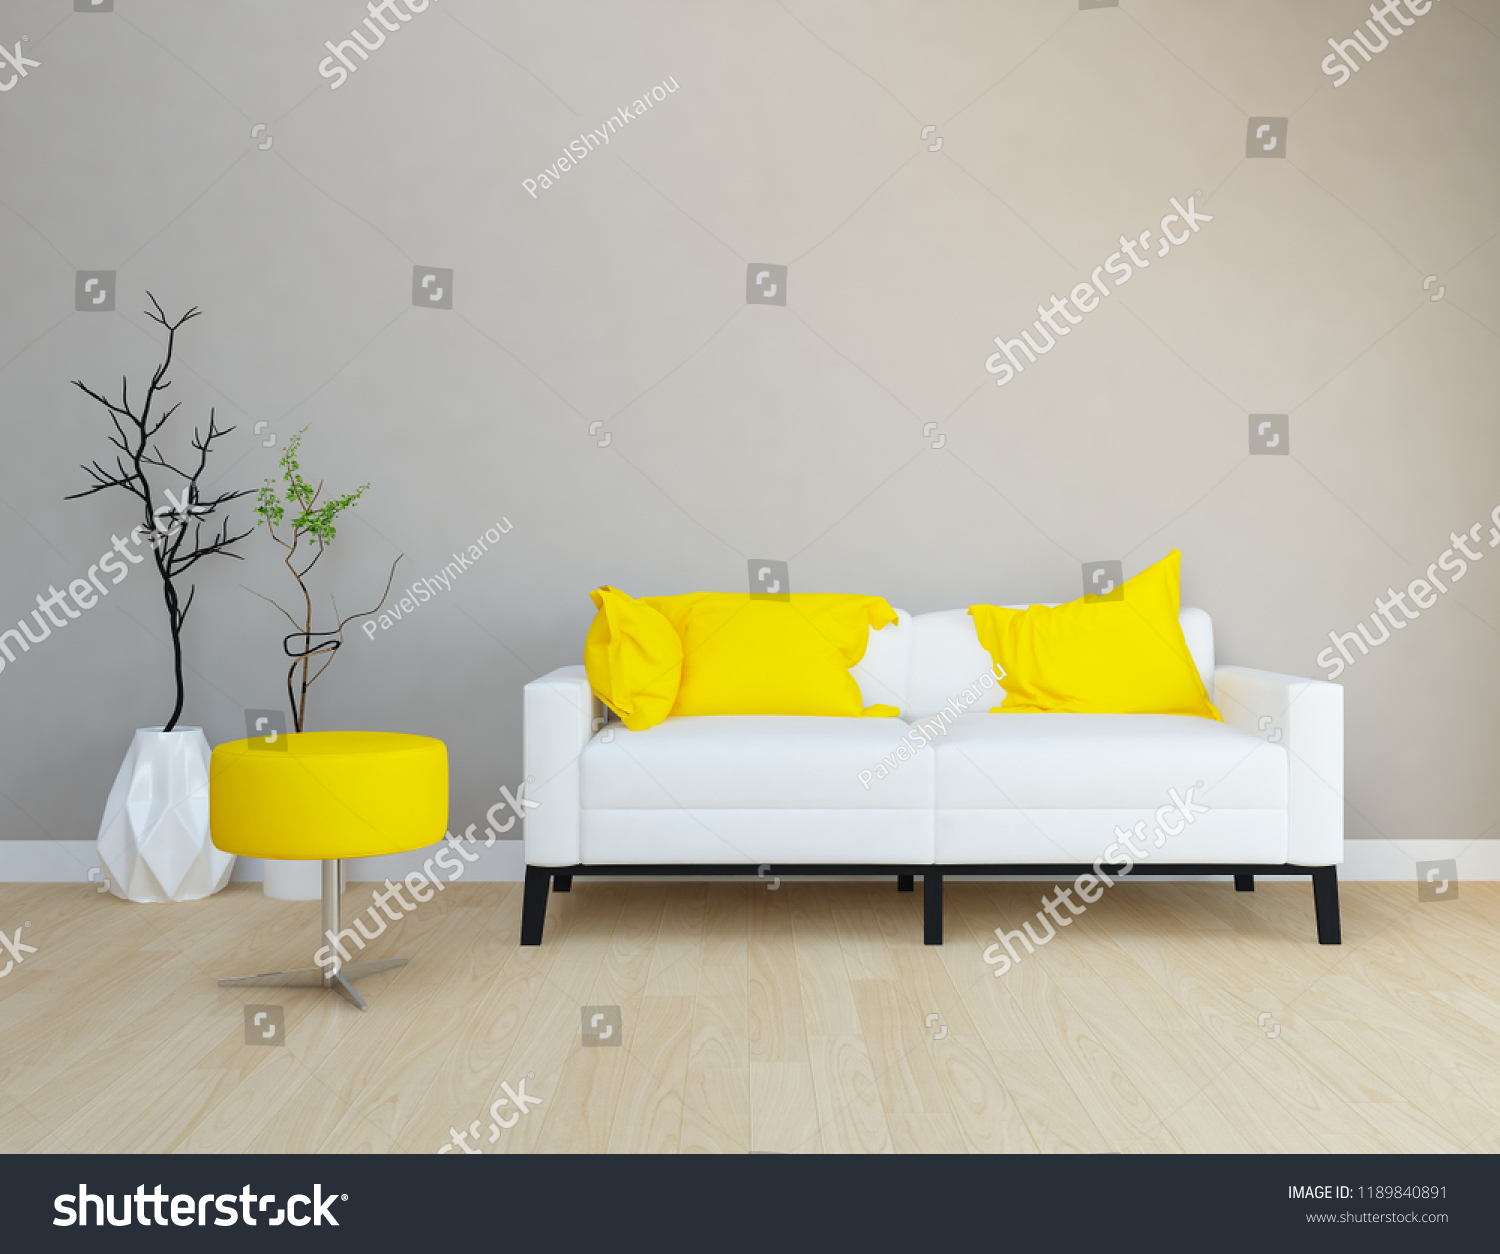 Idea of a grey scandinavian living room interior with sofa vases on the wooden floor